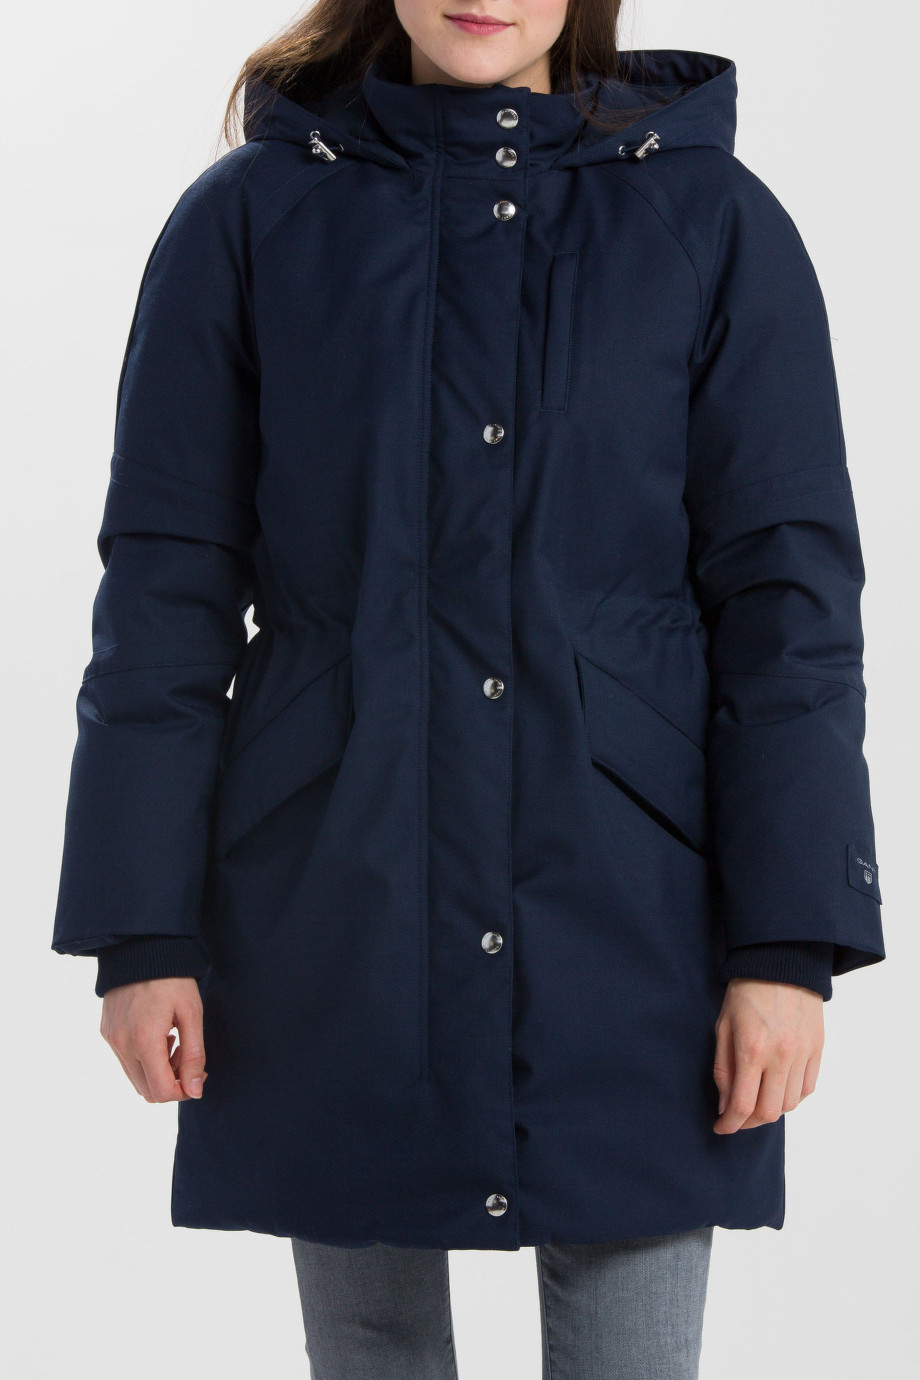 BUNDA GANT O1. TECHNICAL WOOL DOWN PARKA